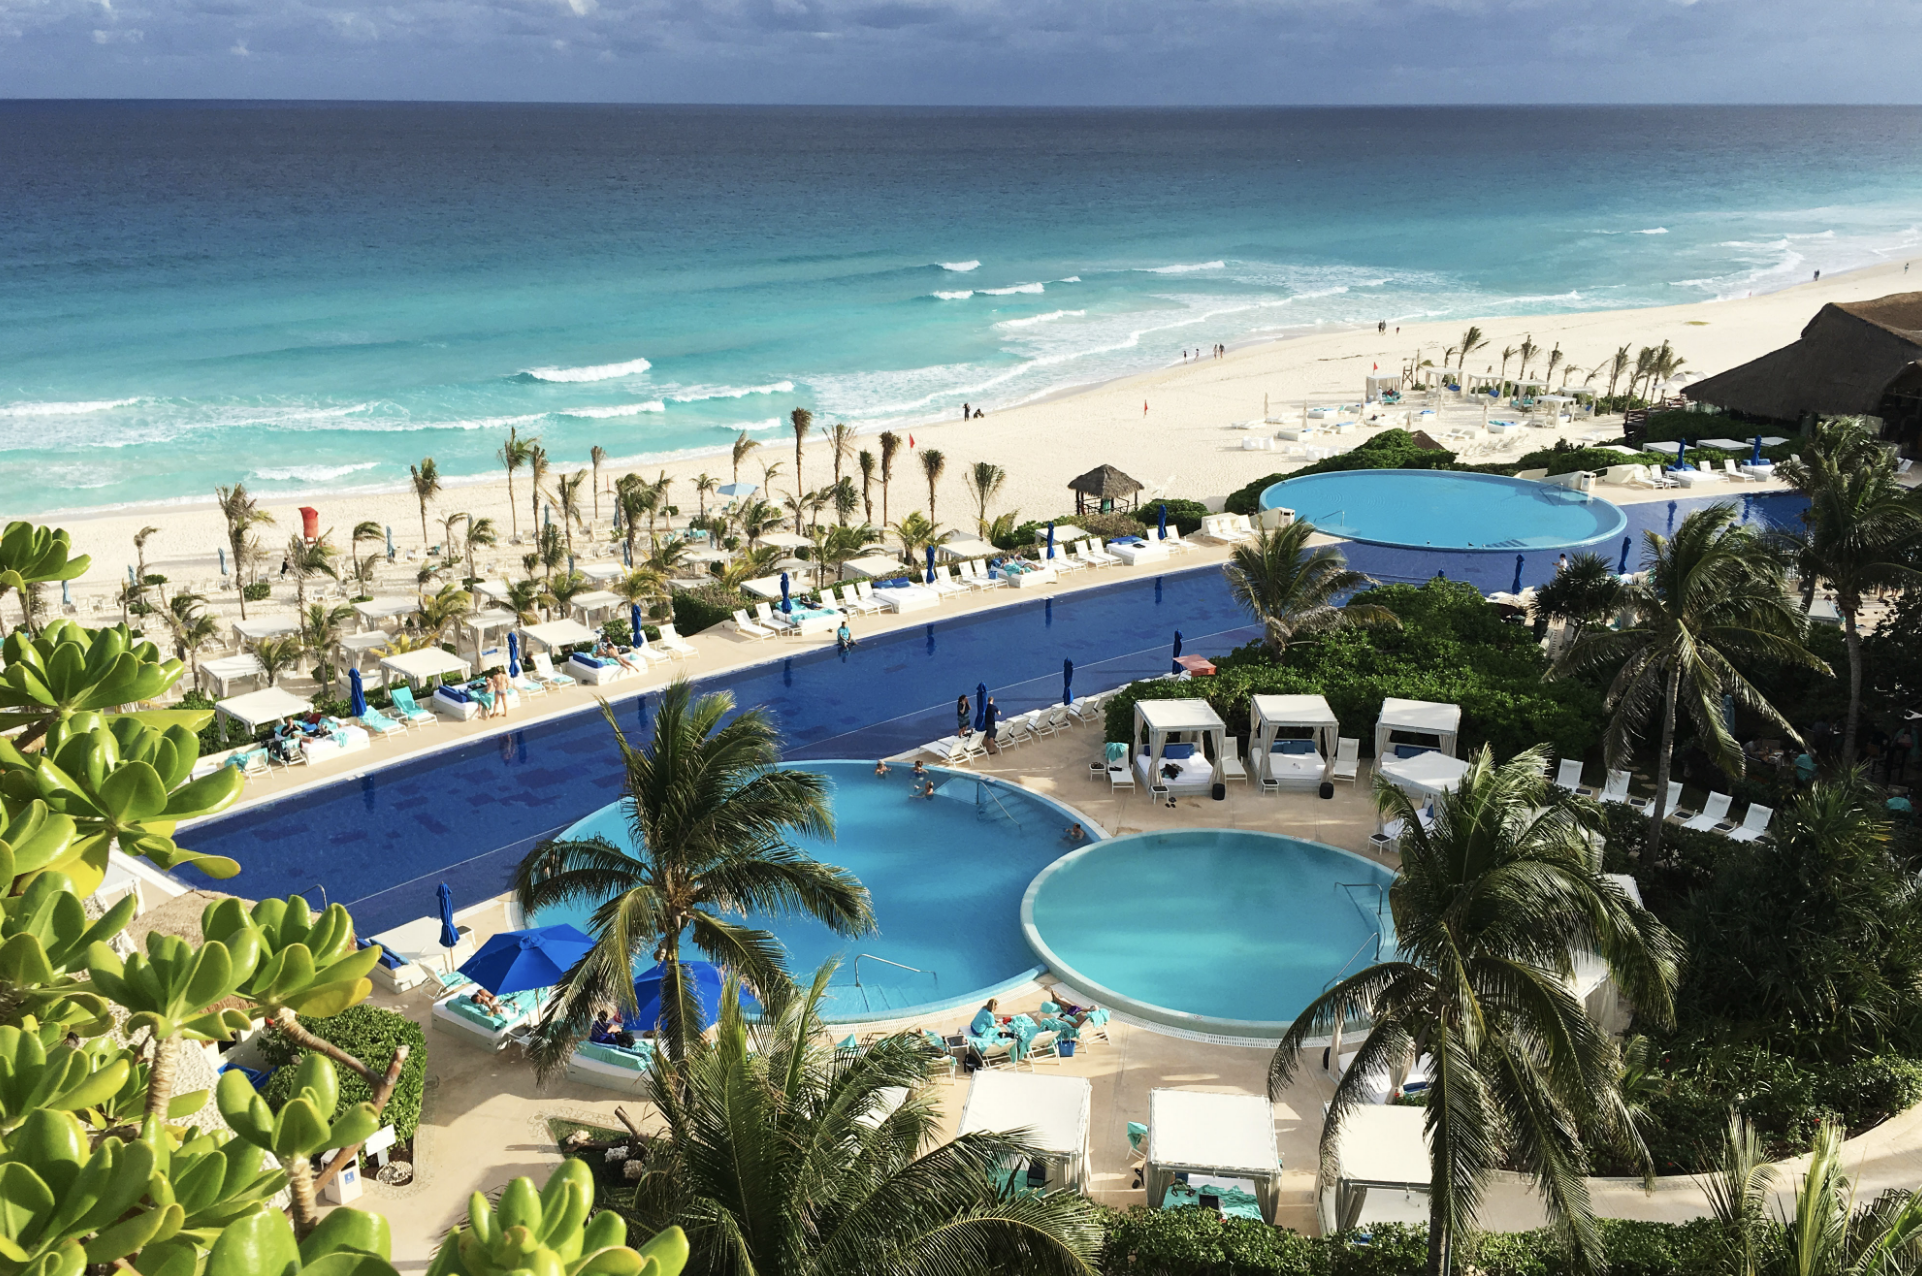 September 16: DEPARTURE - Early this morning you'll depart for Cancun, getting you on the beach as soon as possible! Check into your room and start enjoying the weekend together!